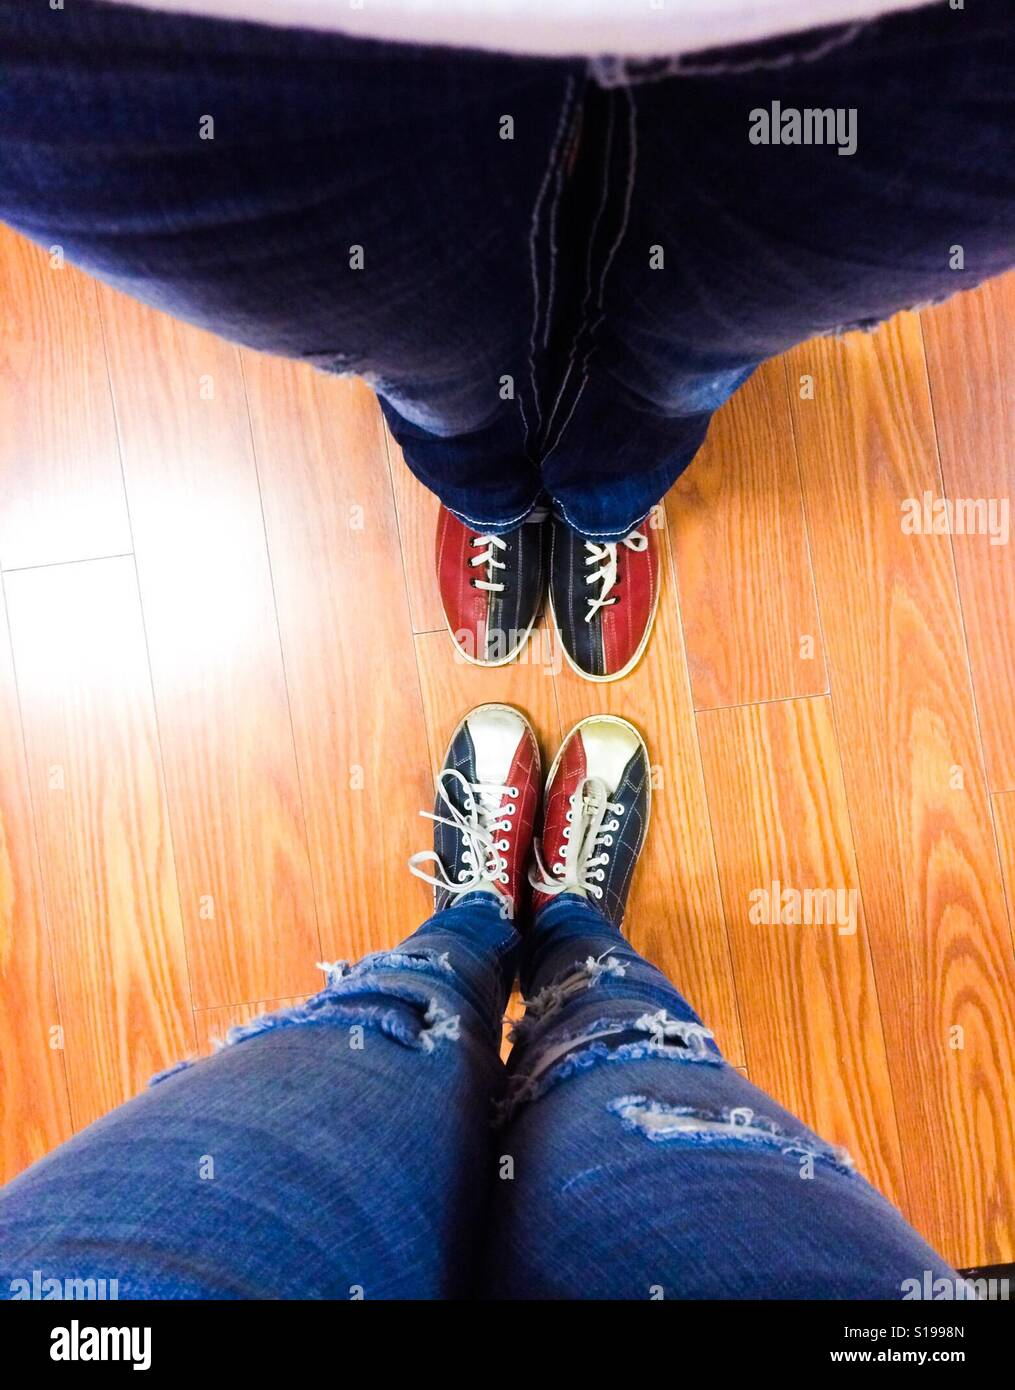 Bowling Shoes - Stock Image